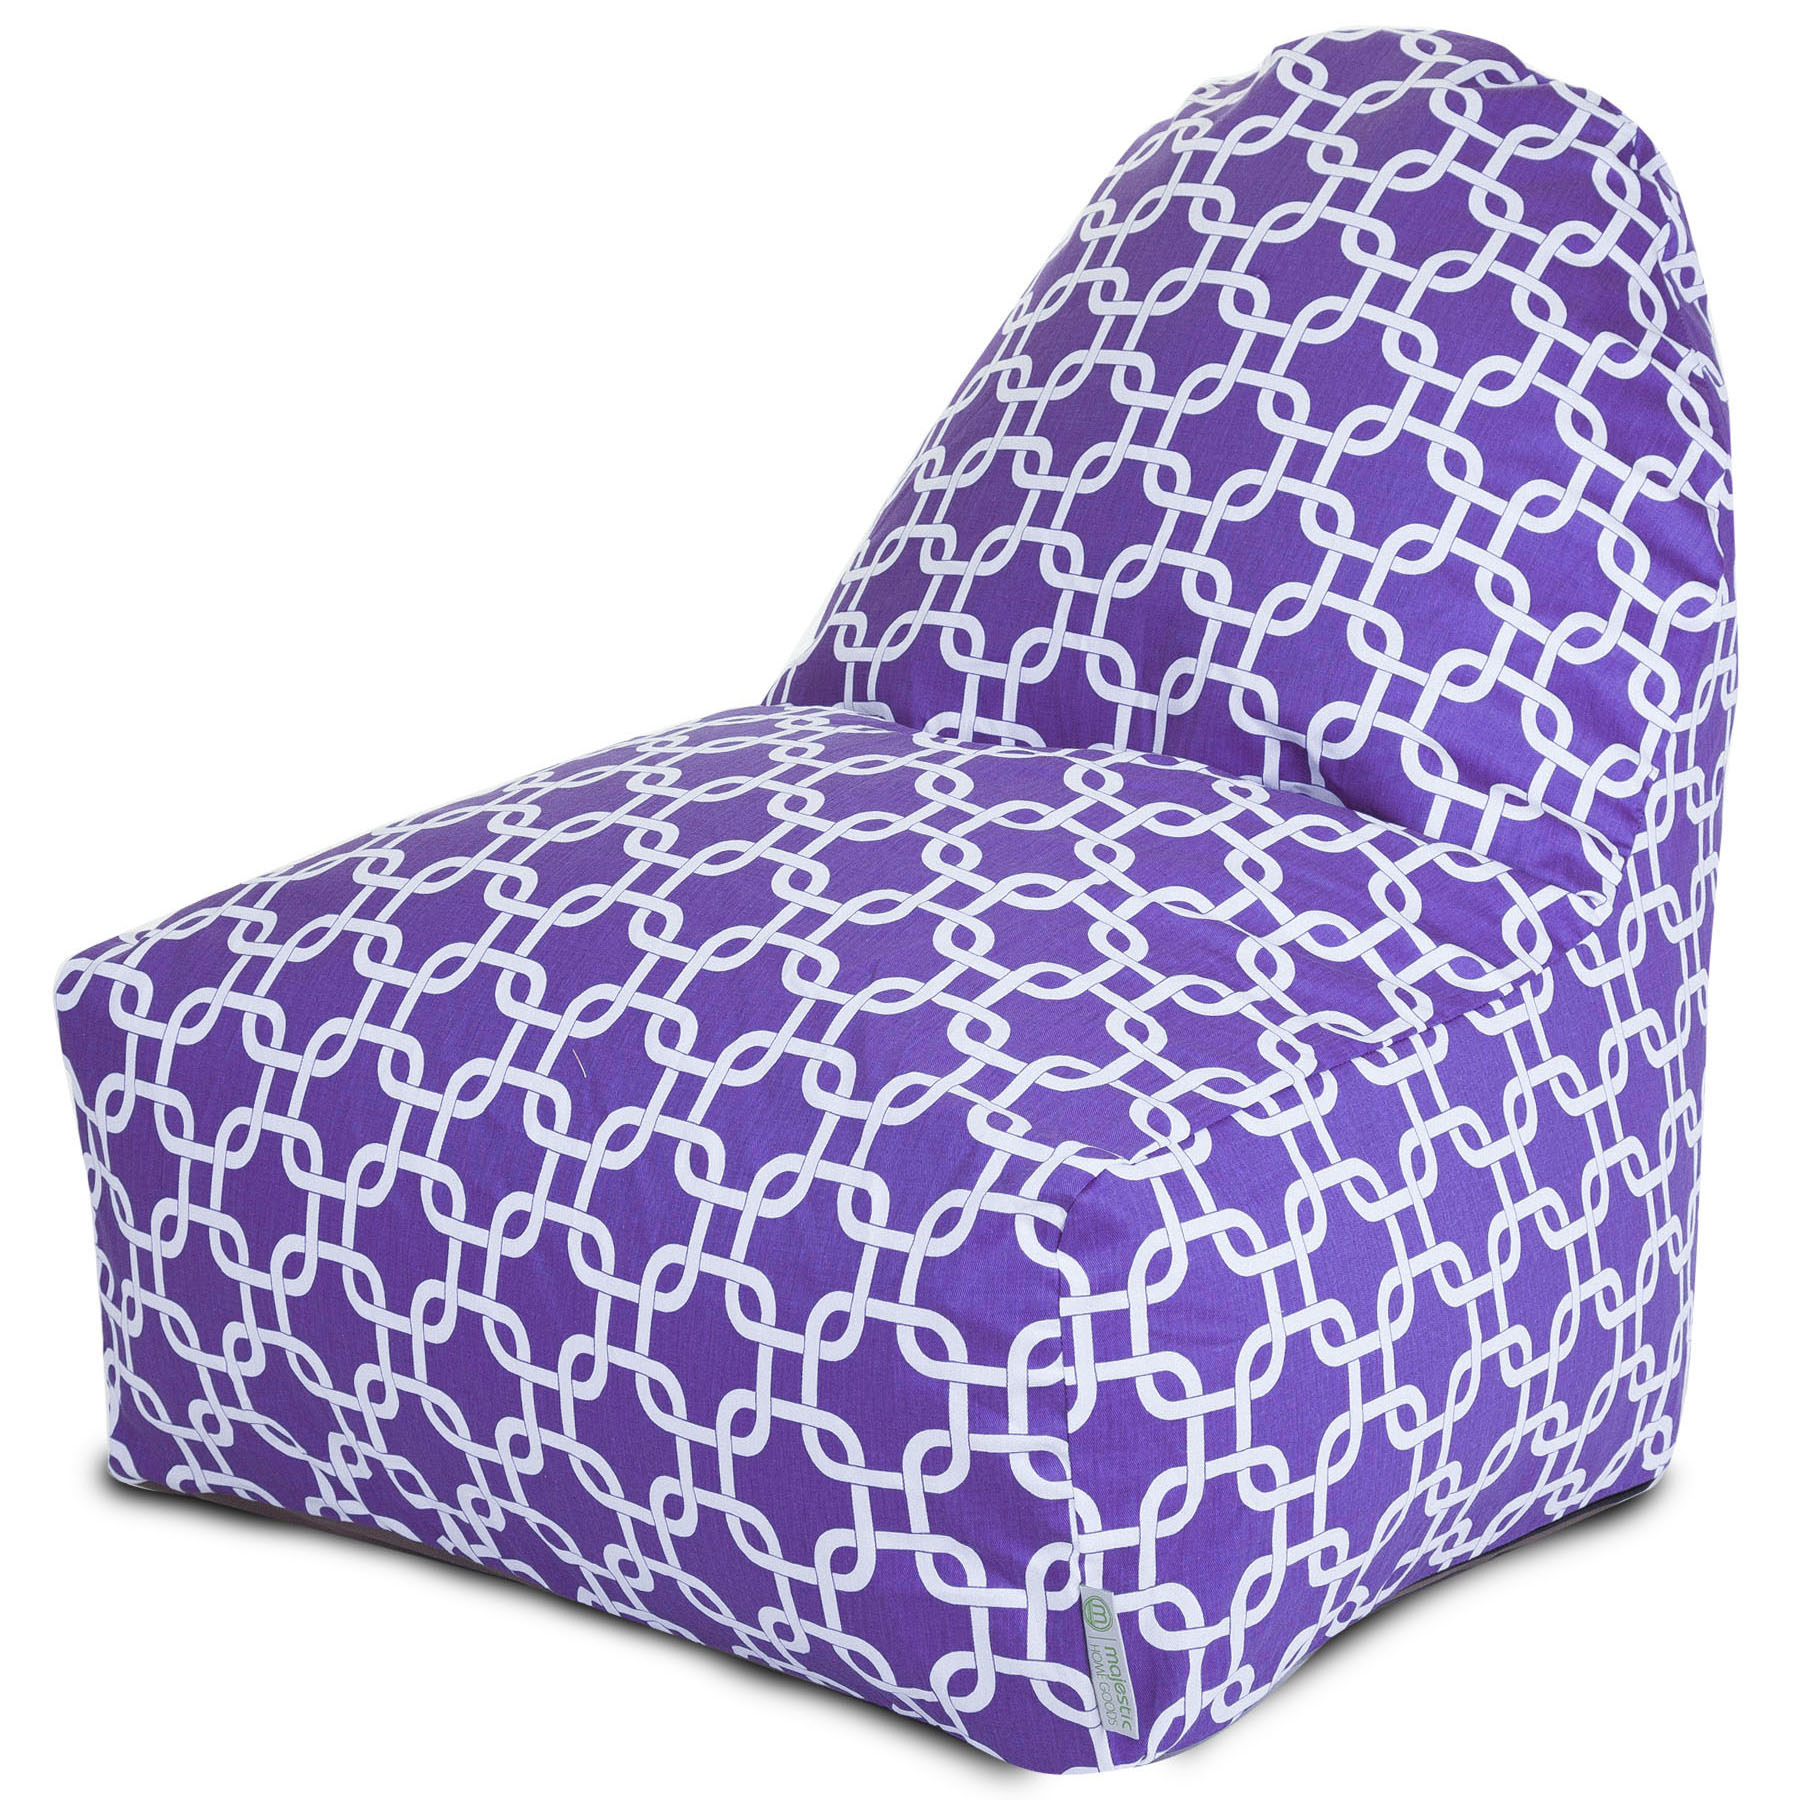 Majestic Home Goods Indoor Purple Links Bean Bag Kick-it Chair 30 in L x 26 in W x 30 in H